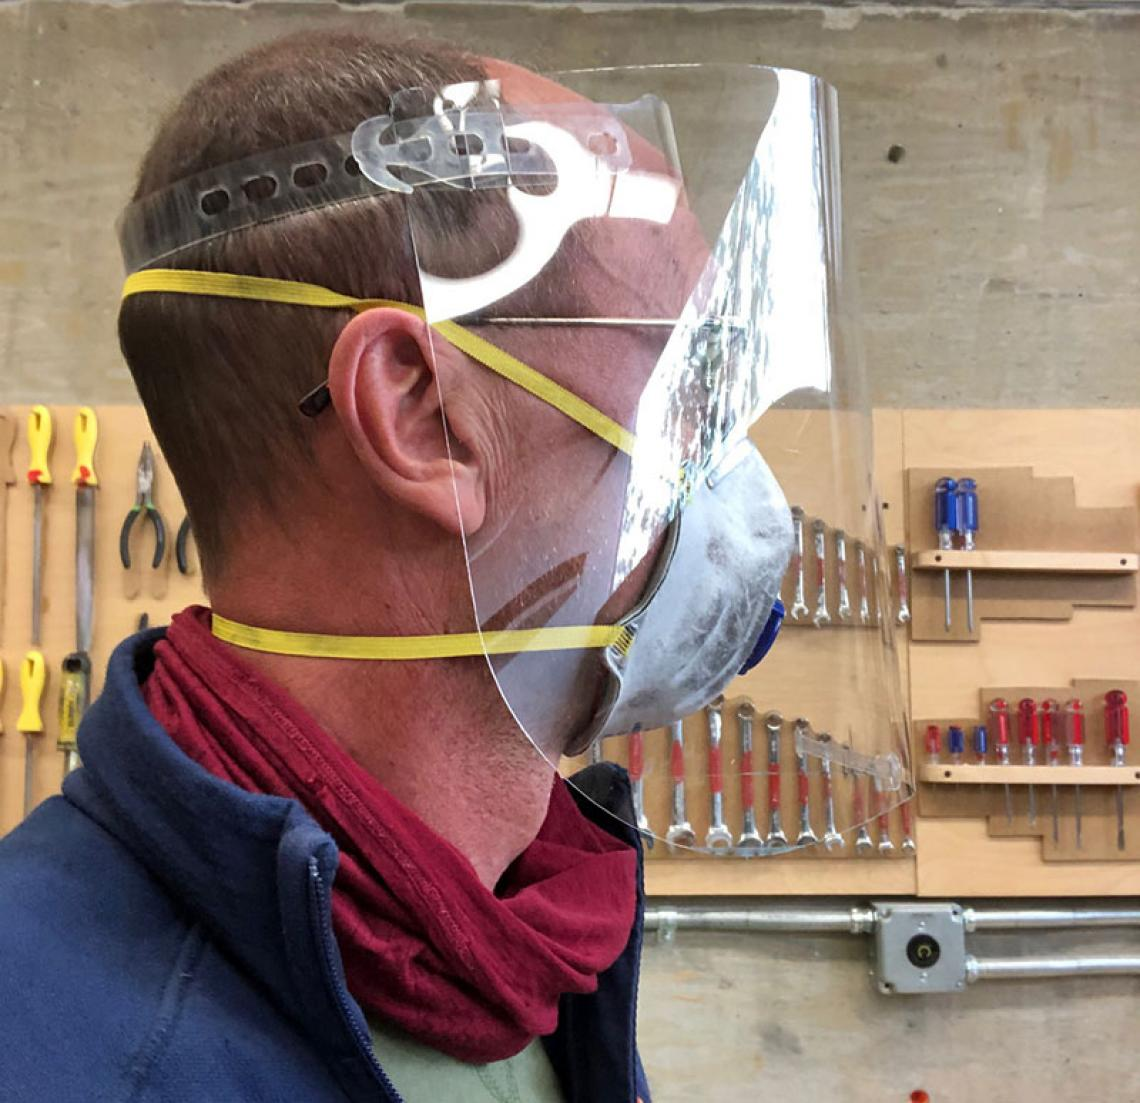 Paulus Musters tests faceshield